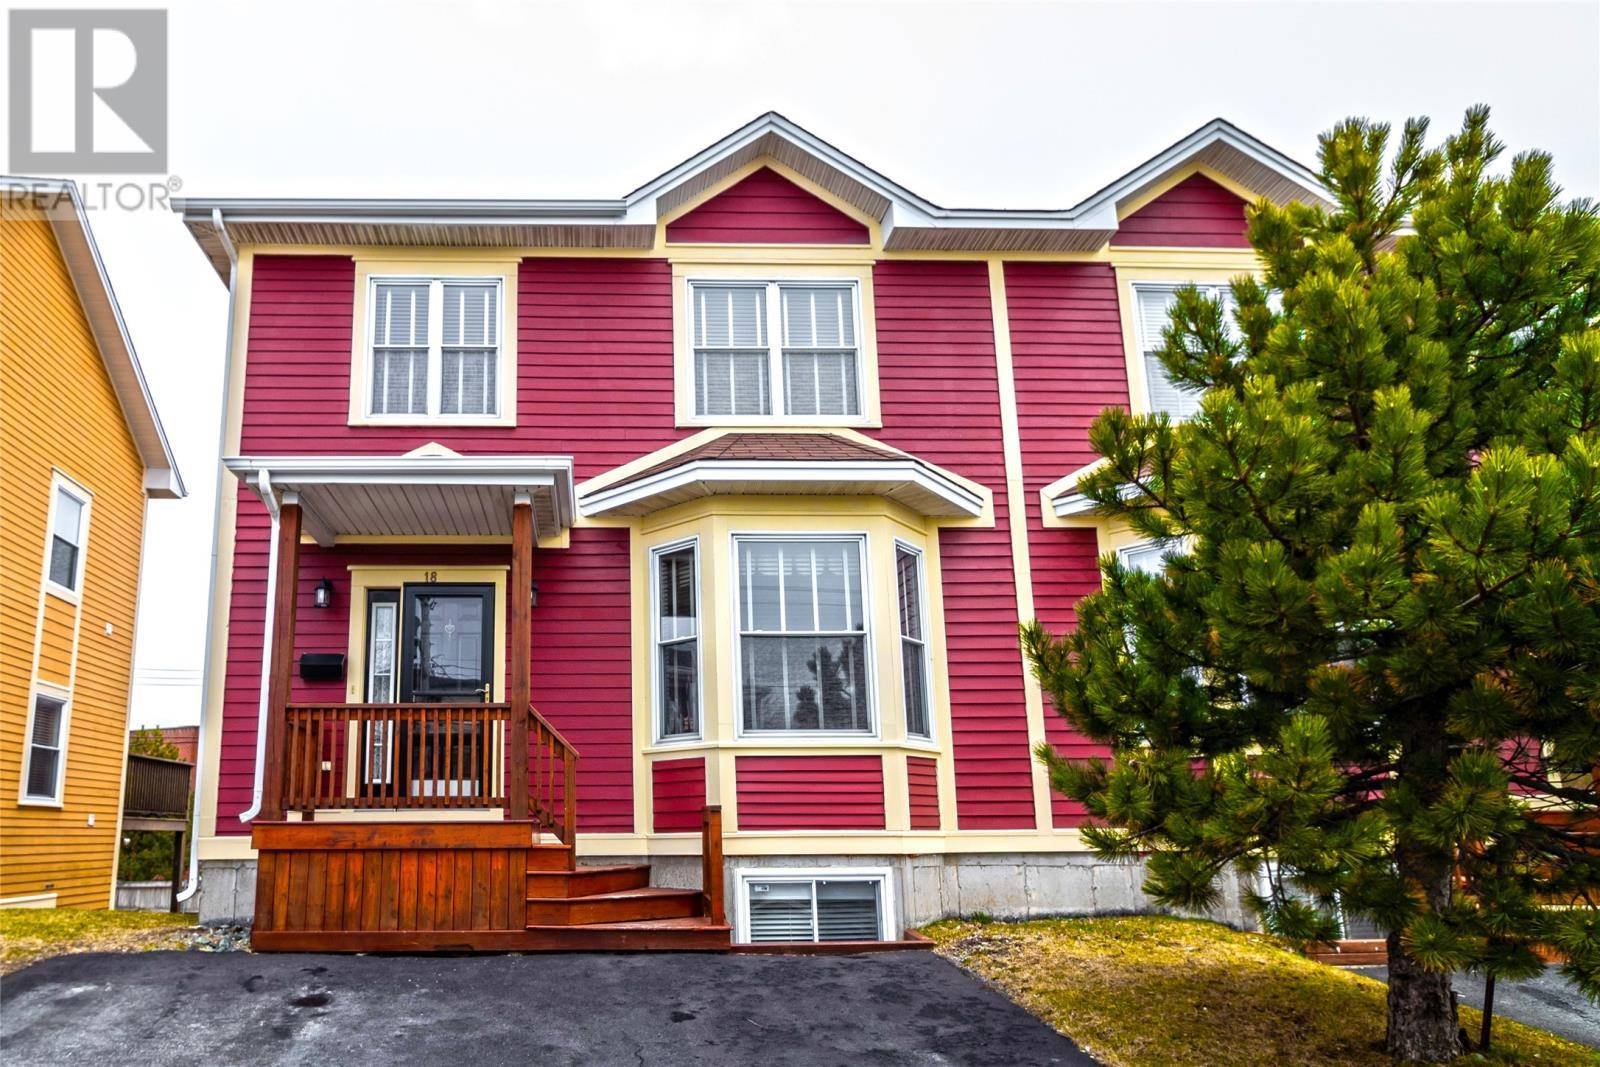 House for sale at 18 Newtown Rd St. John's Newfoundland - MLS: 1212030